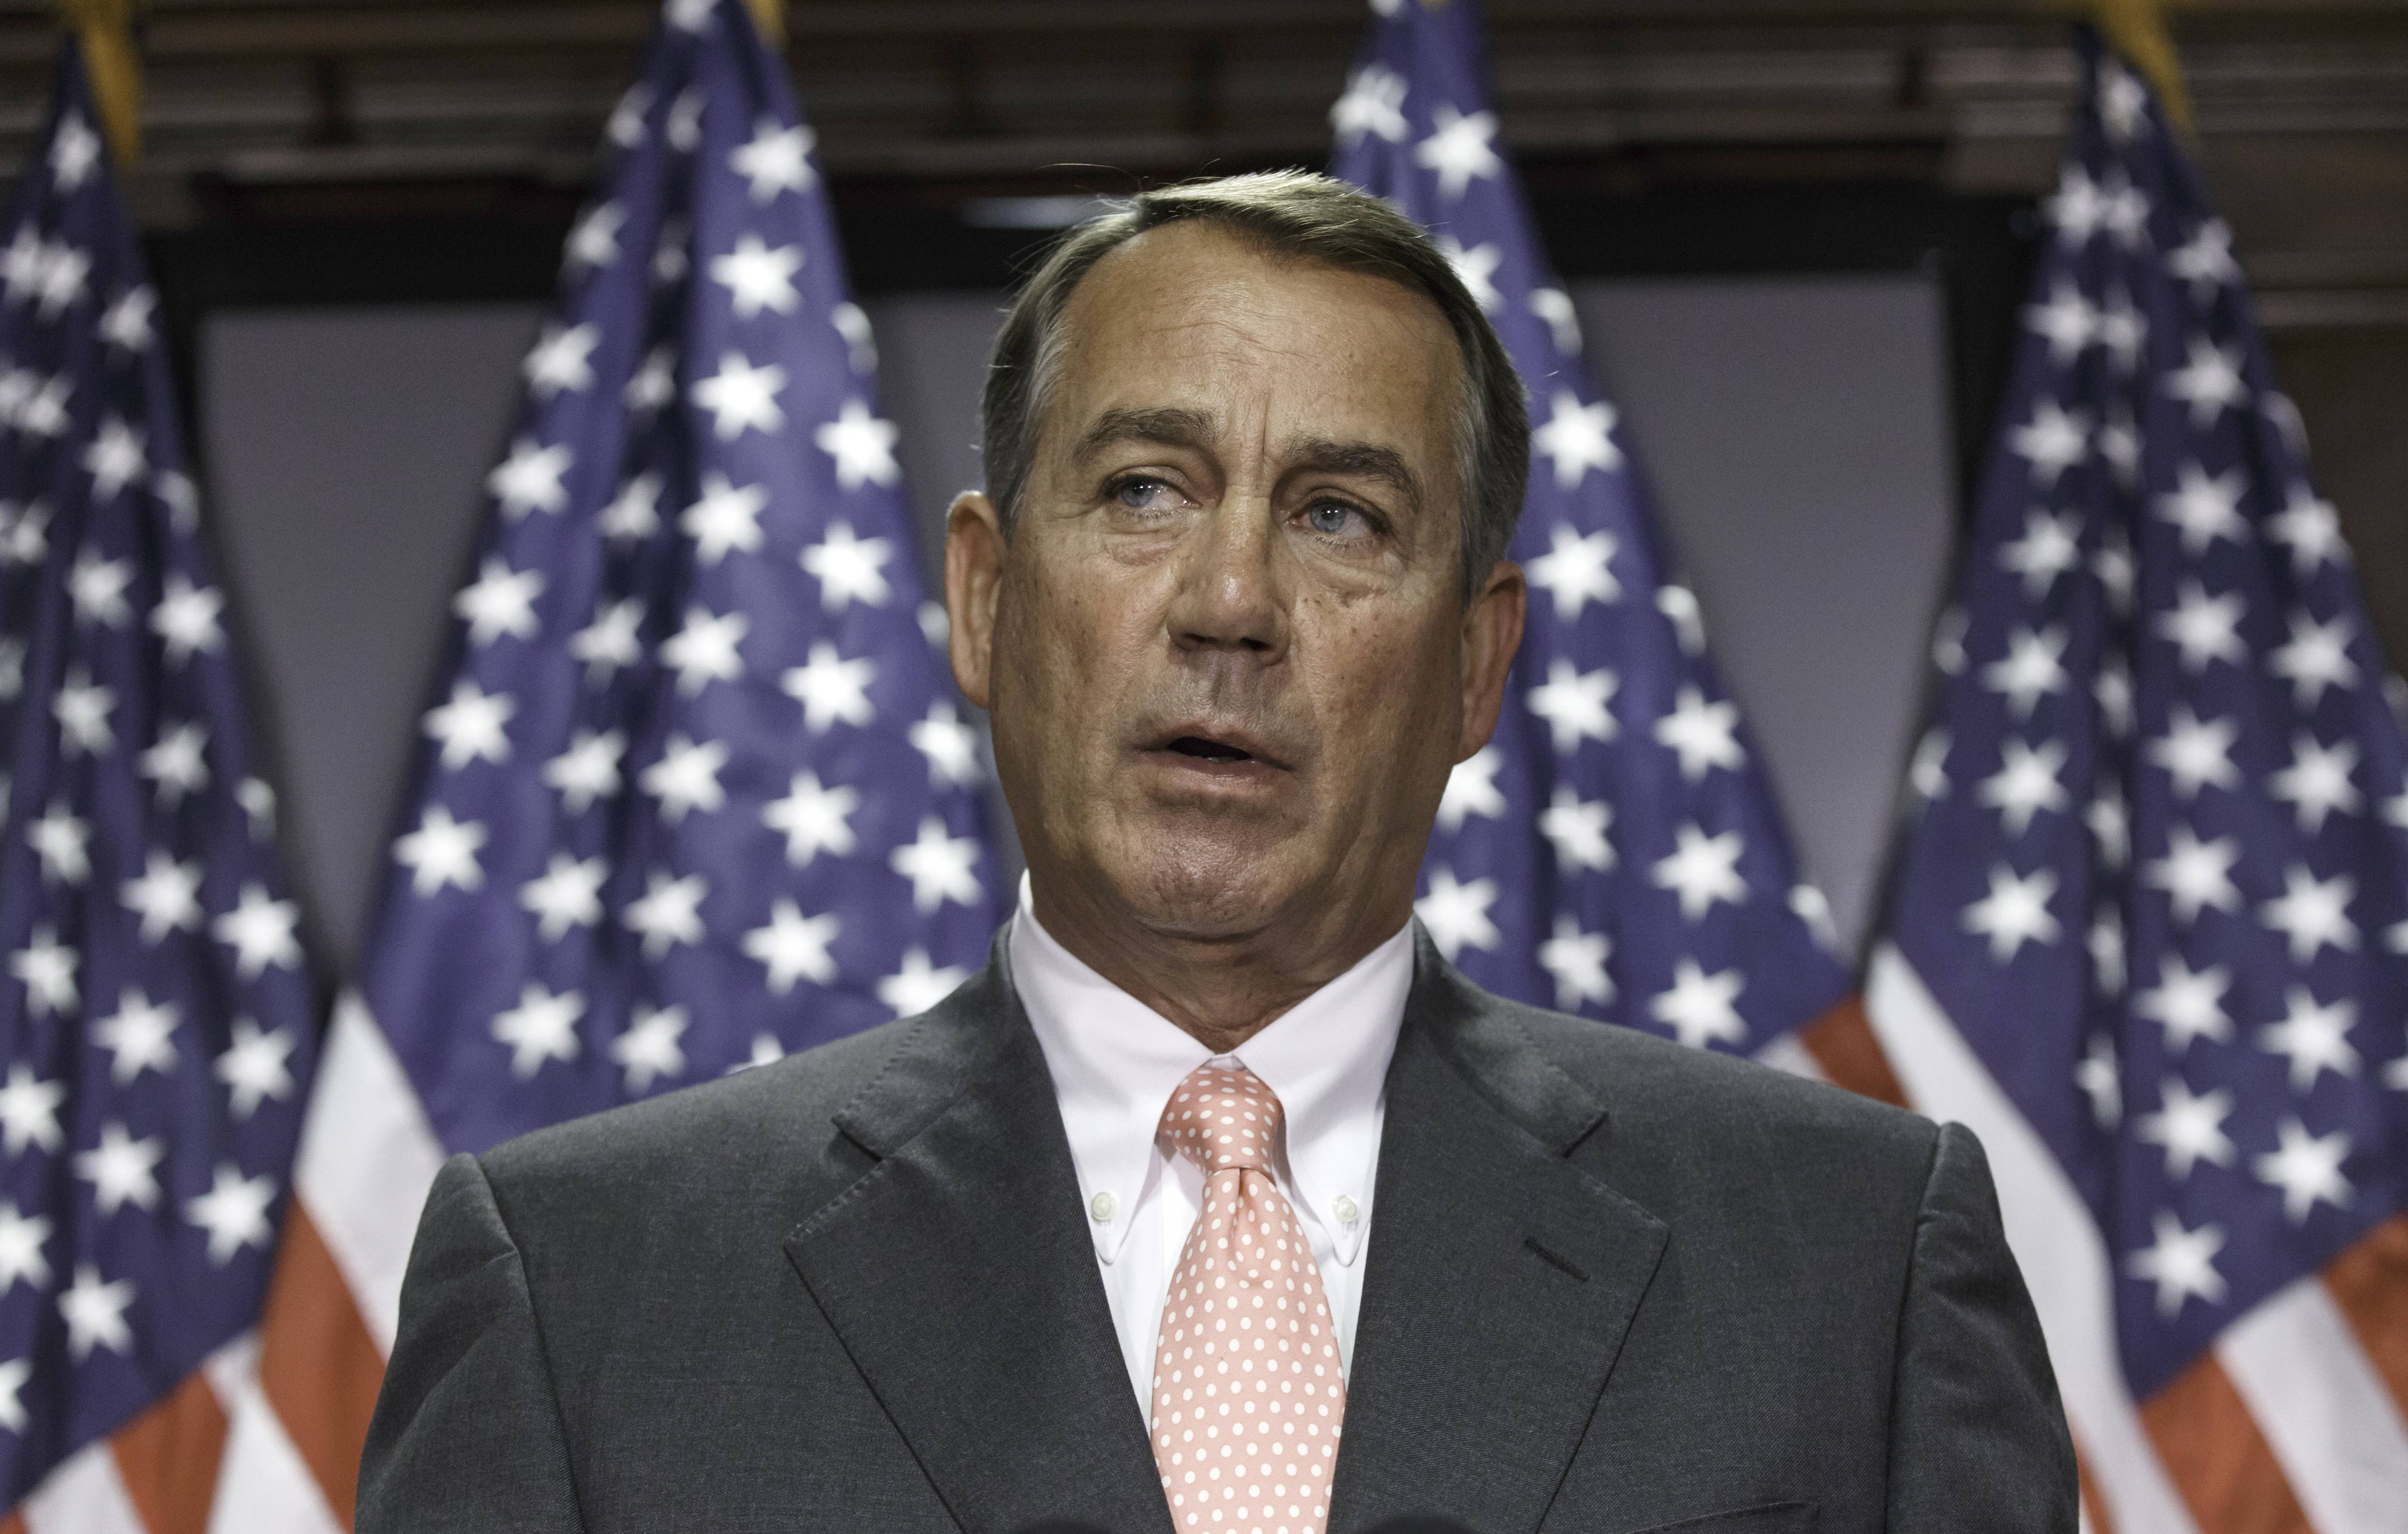 House Speaker John Boehner told President Barack Obama the House will not vote on overhauling the nation's troubled immigration system during this election year. So, Obama announced Monday he would deal with immigration through executive actions without congressional approval.